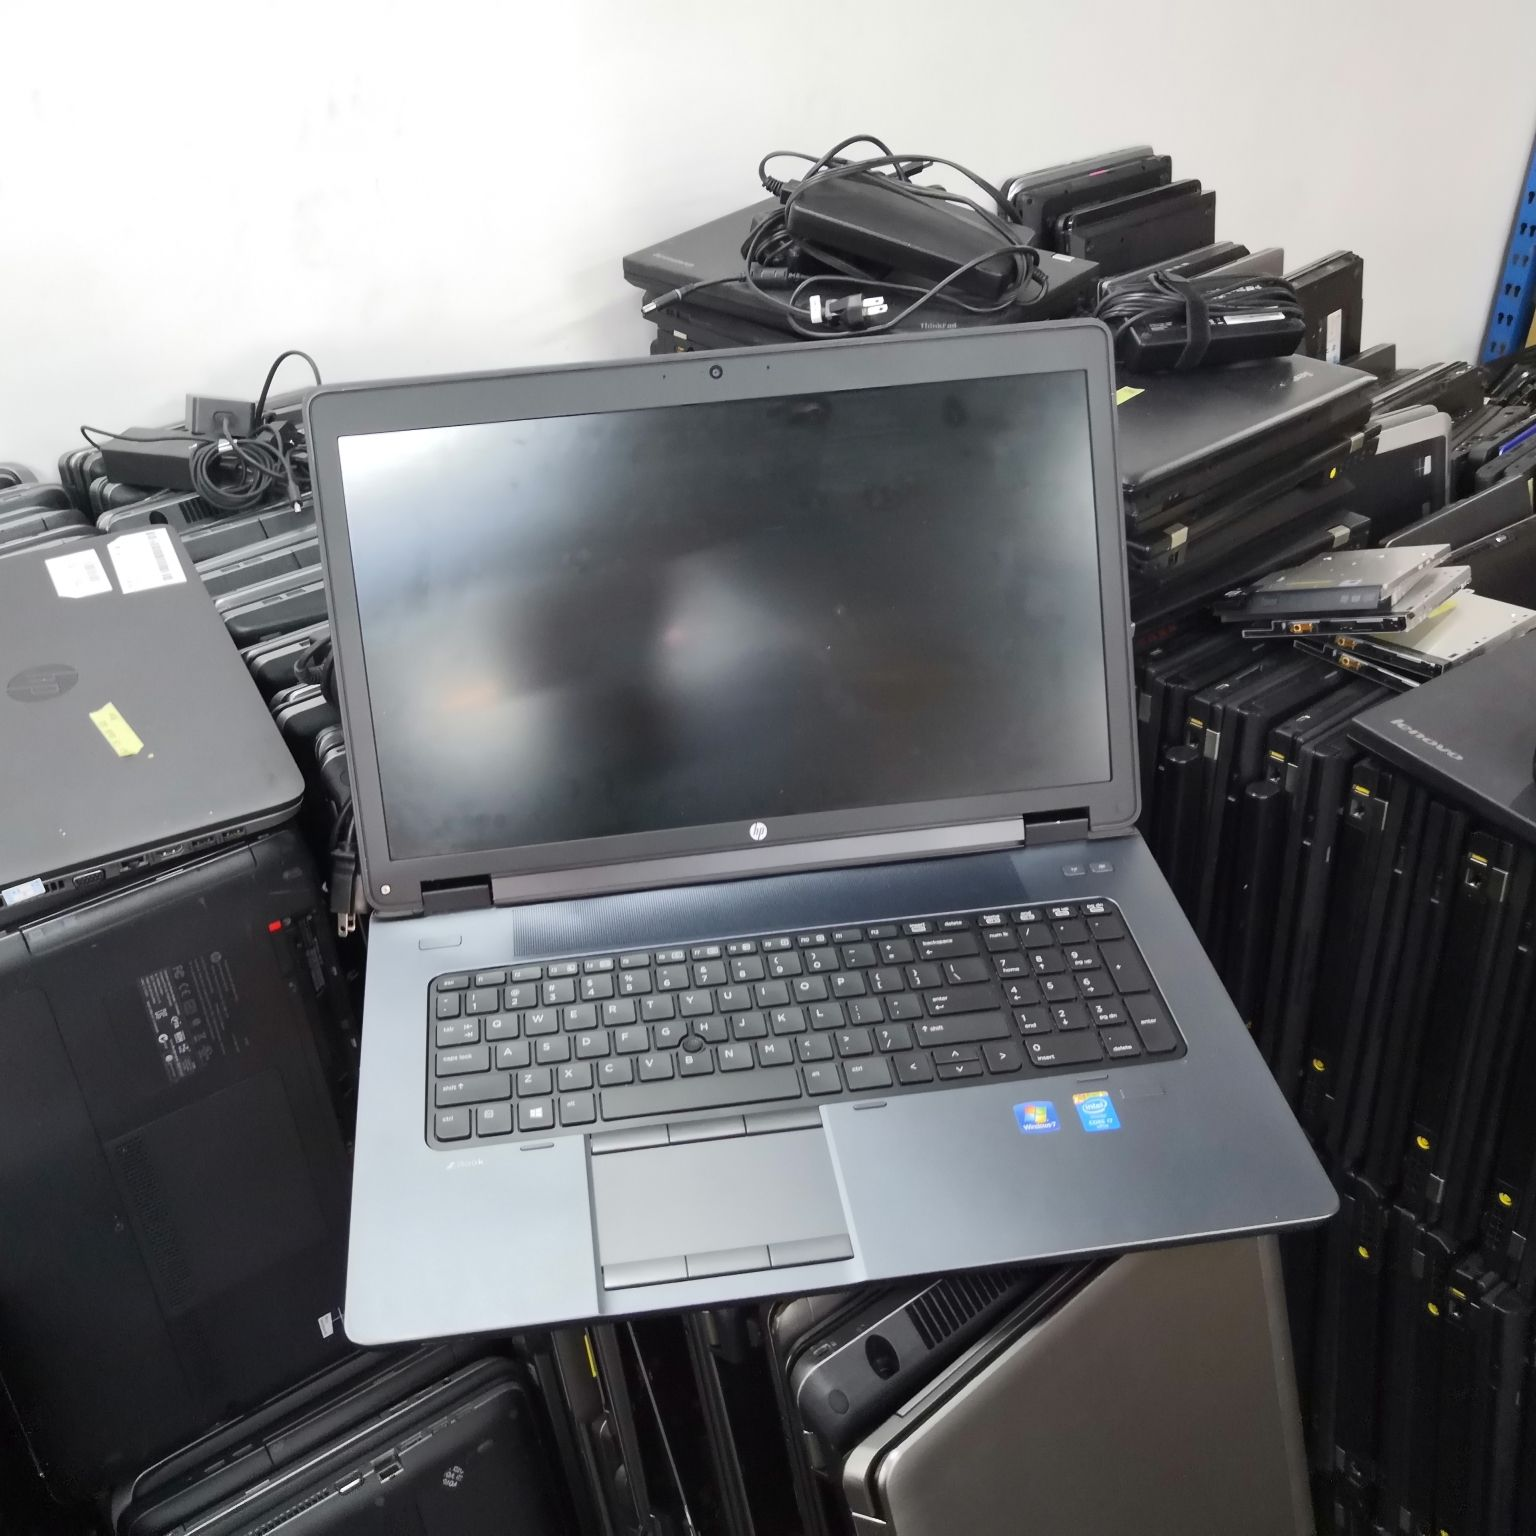 200 business office used laptops for sale wholesale 840 G1 G2 G3 G4 850 8460P 8470P 8570P 9470M 9480M